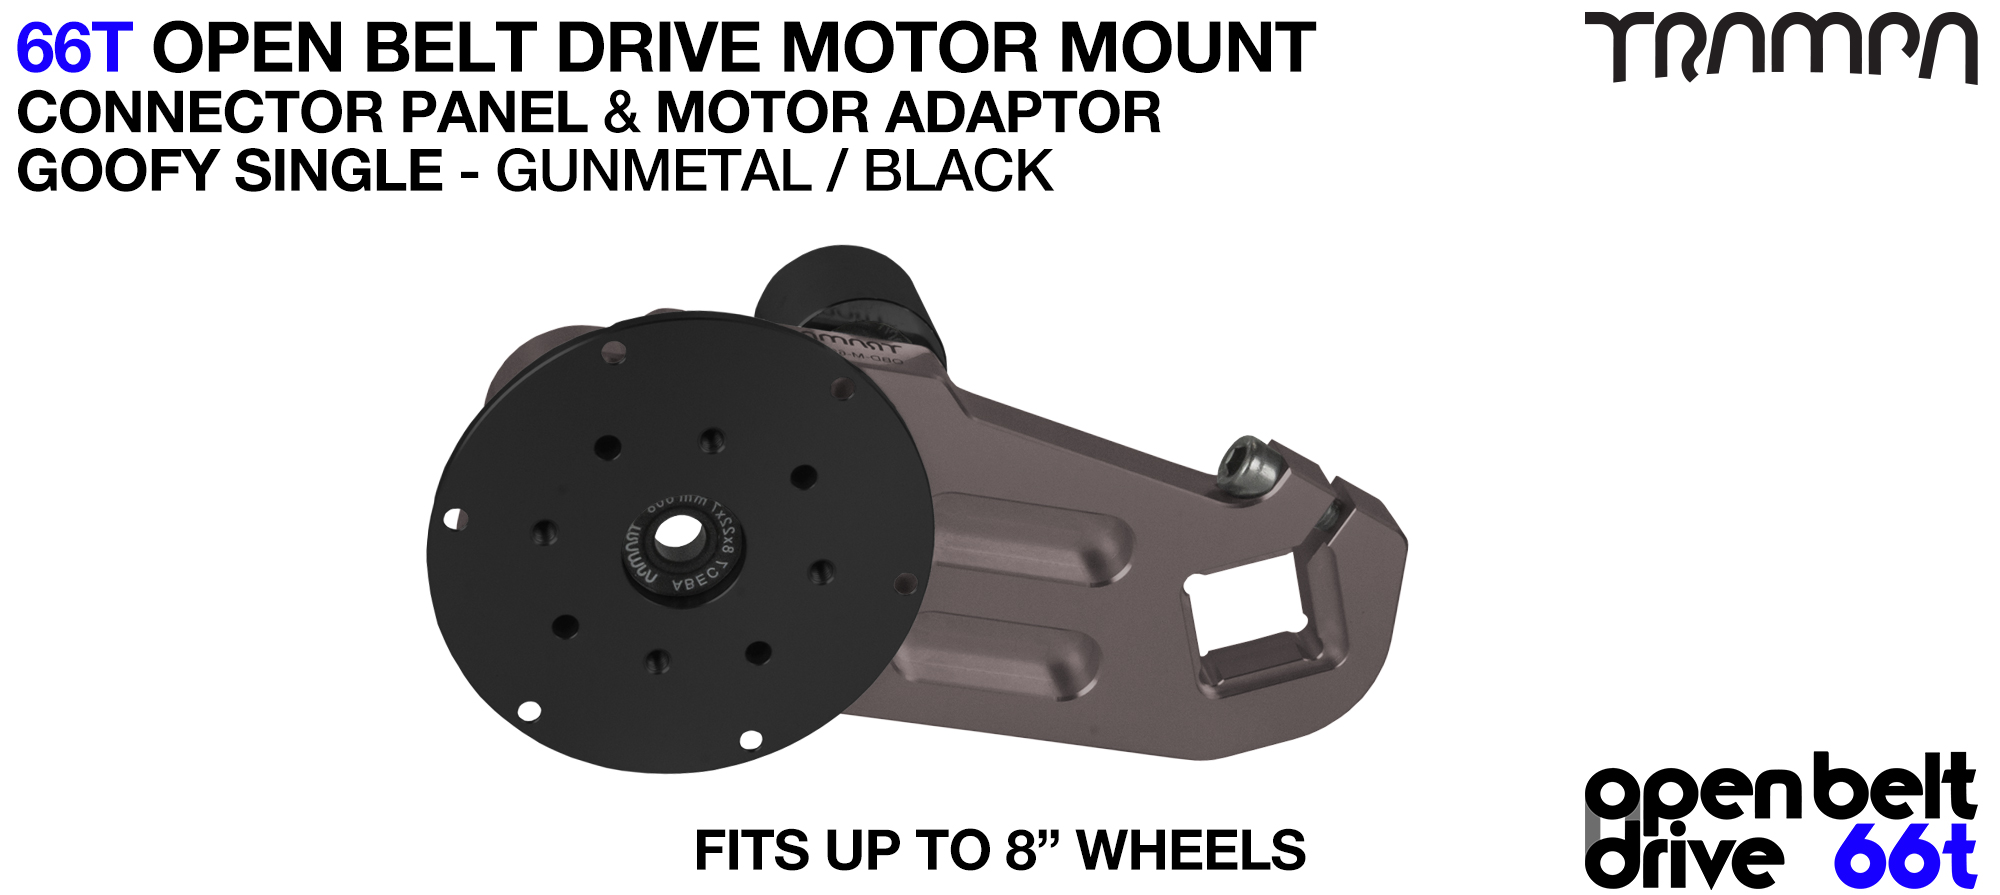 66T OPEN BELT DRIVE Motor Mount & Motor Adaptor - SINGLE GUNMETAL